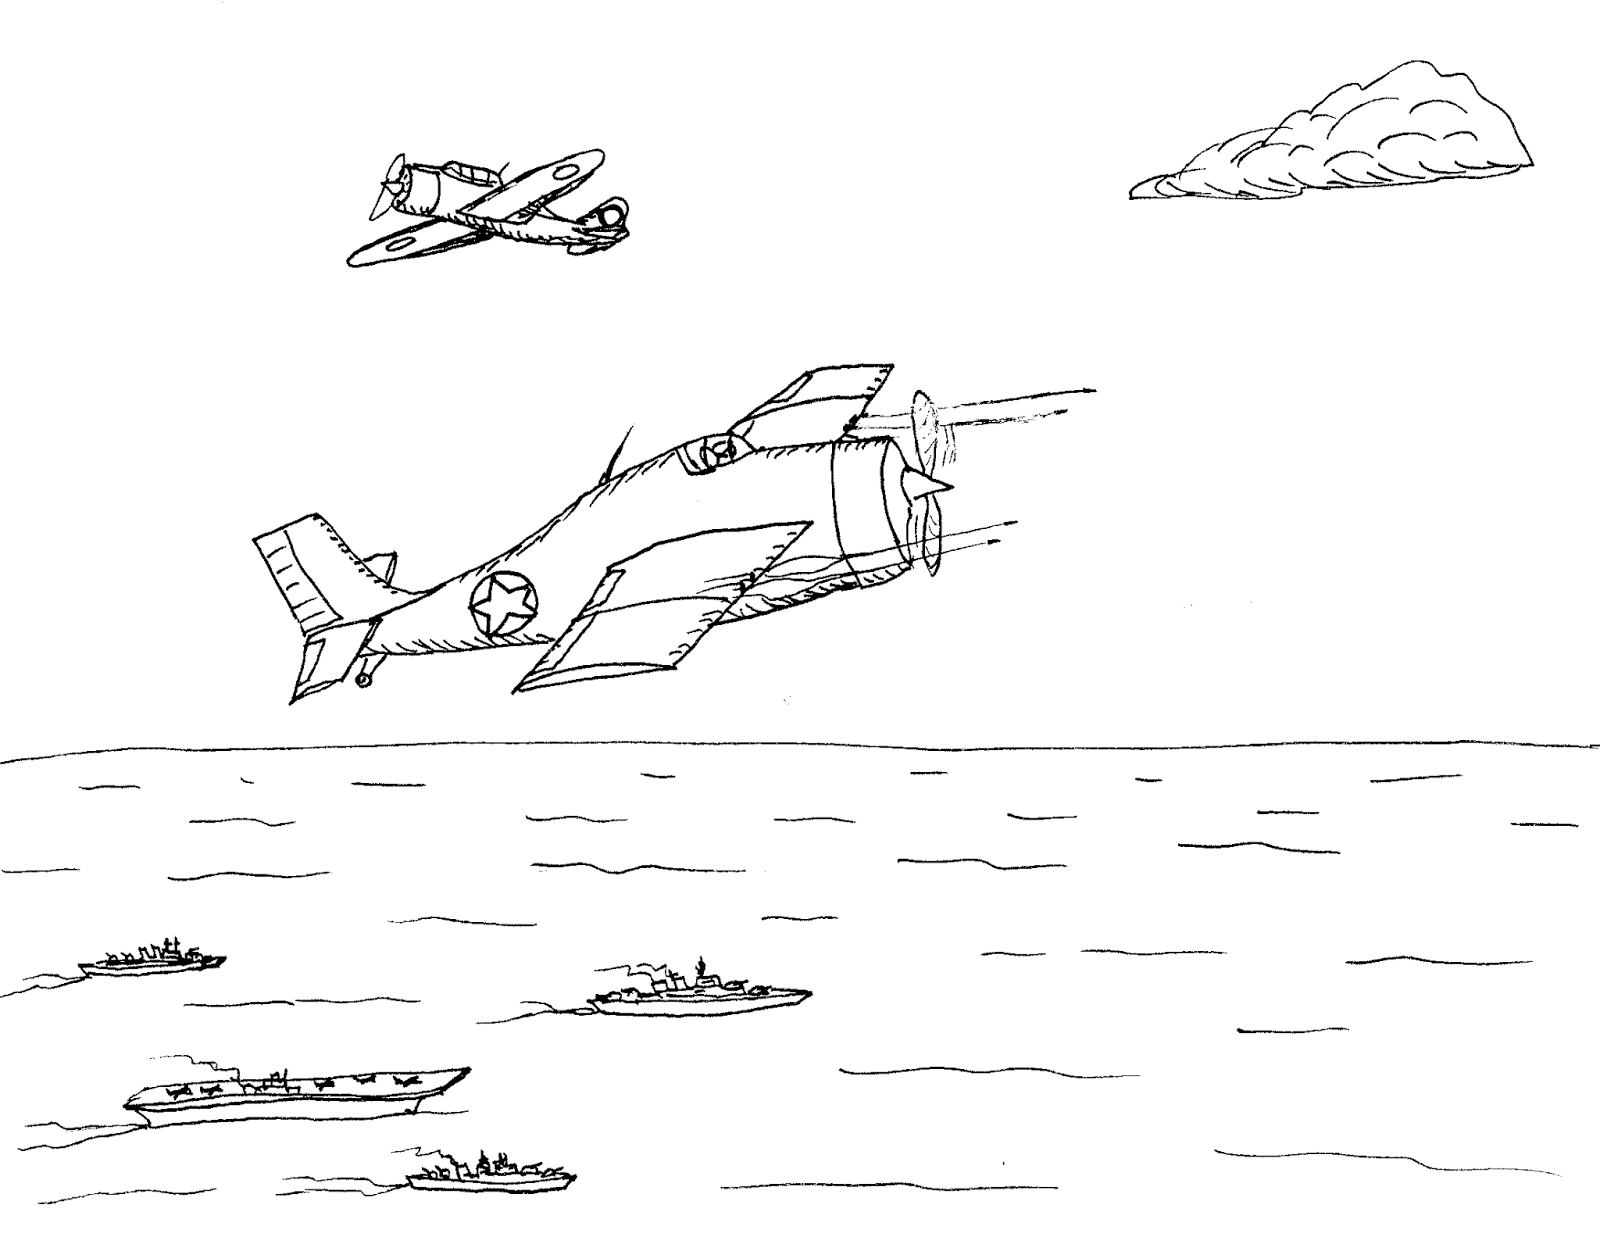 Robin's Great Coloring Pages: Battle of Midway 75th